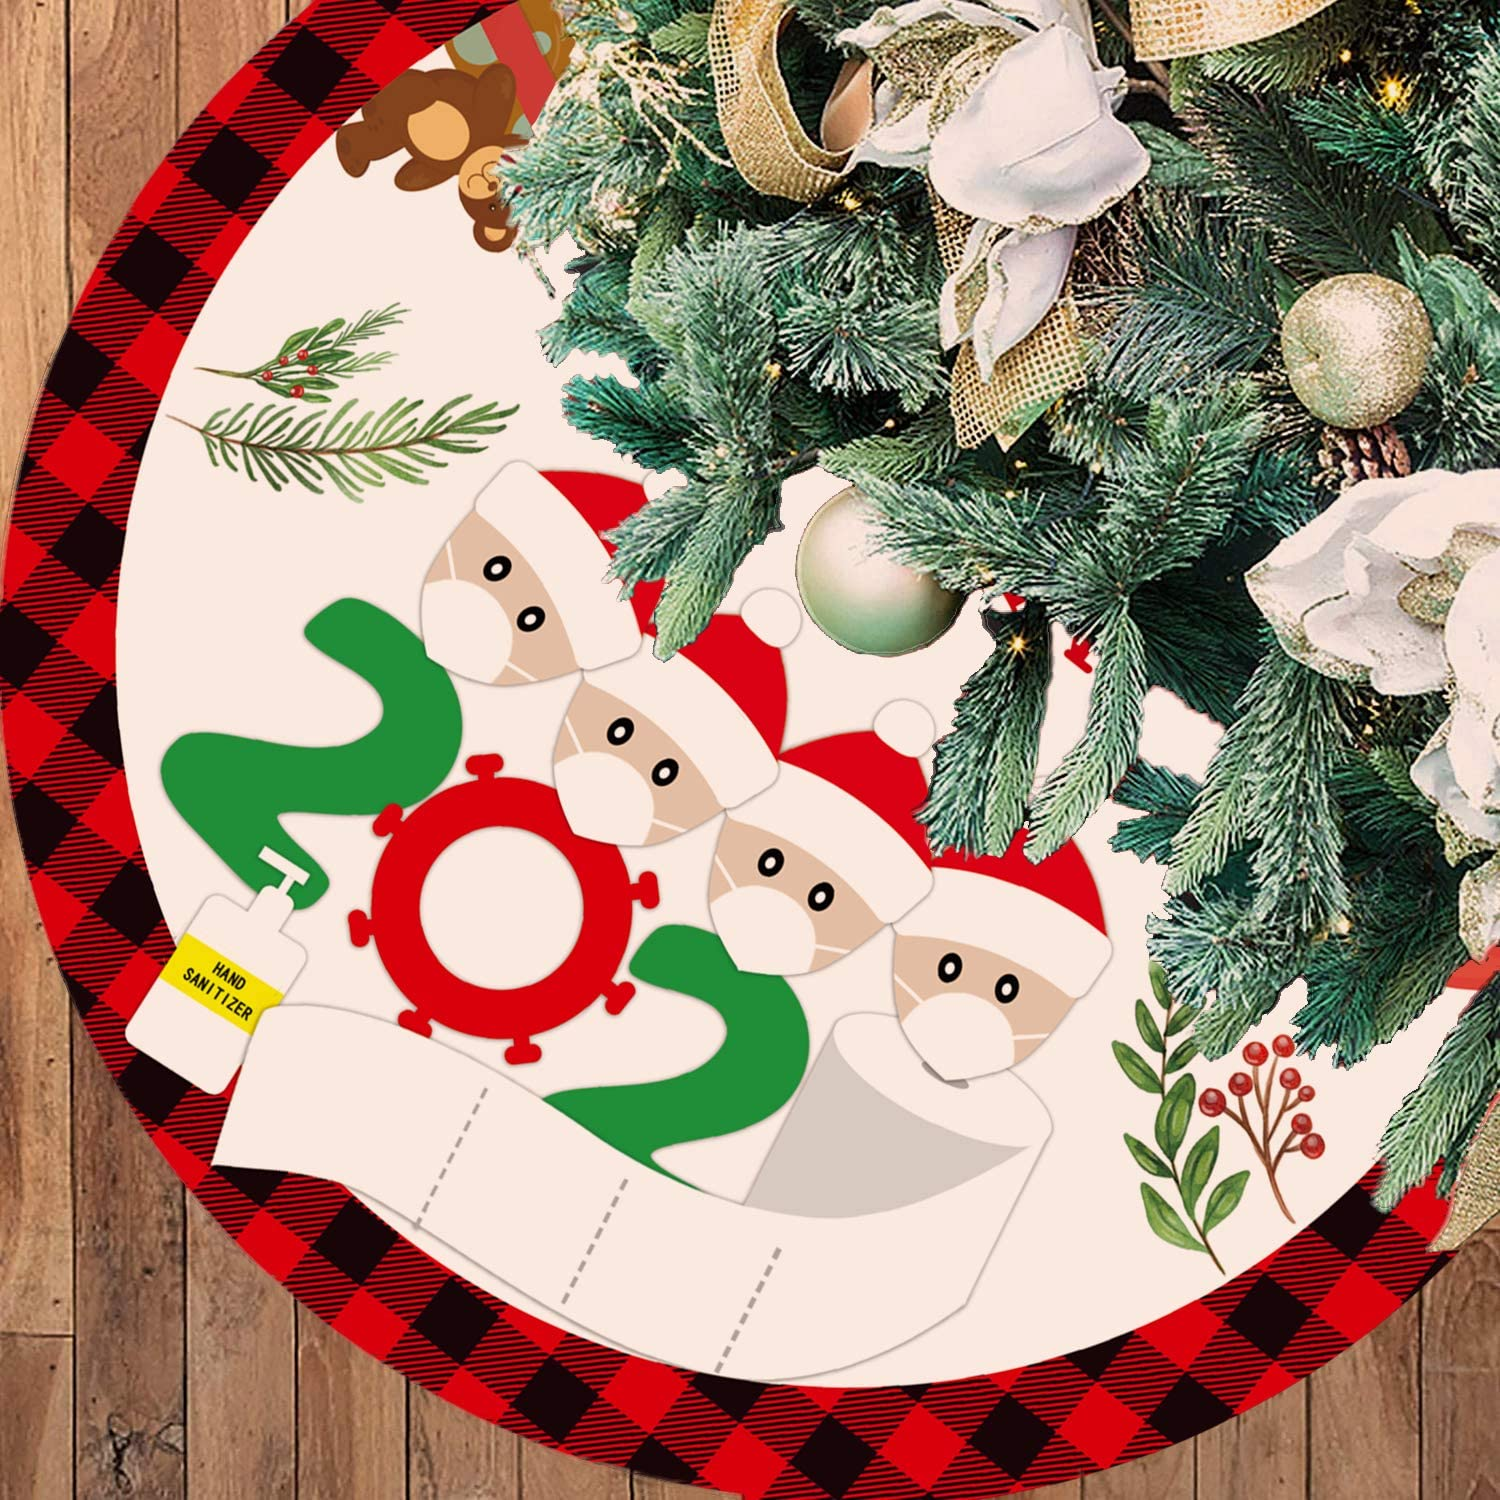 36 Rapid rise Inches Large Christmas Tree Skirt Plai Black Product Red and Buffalo